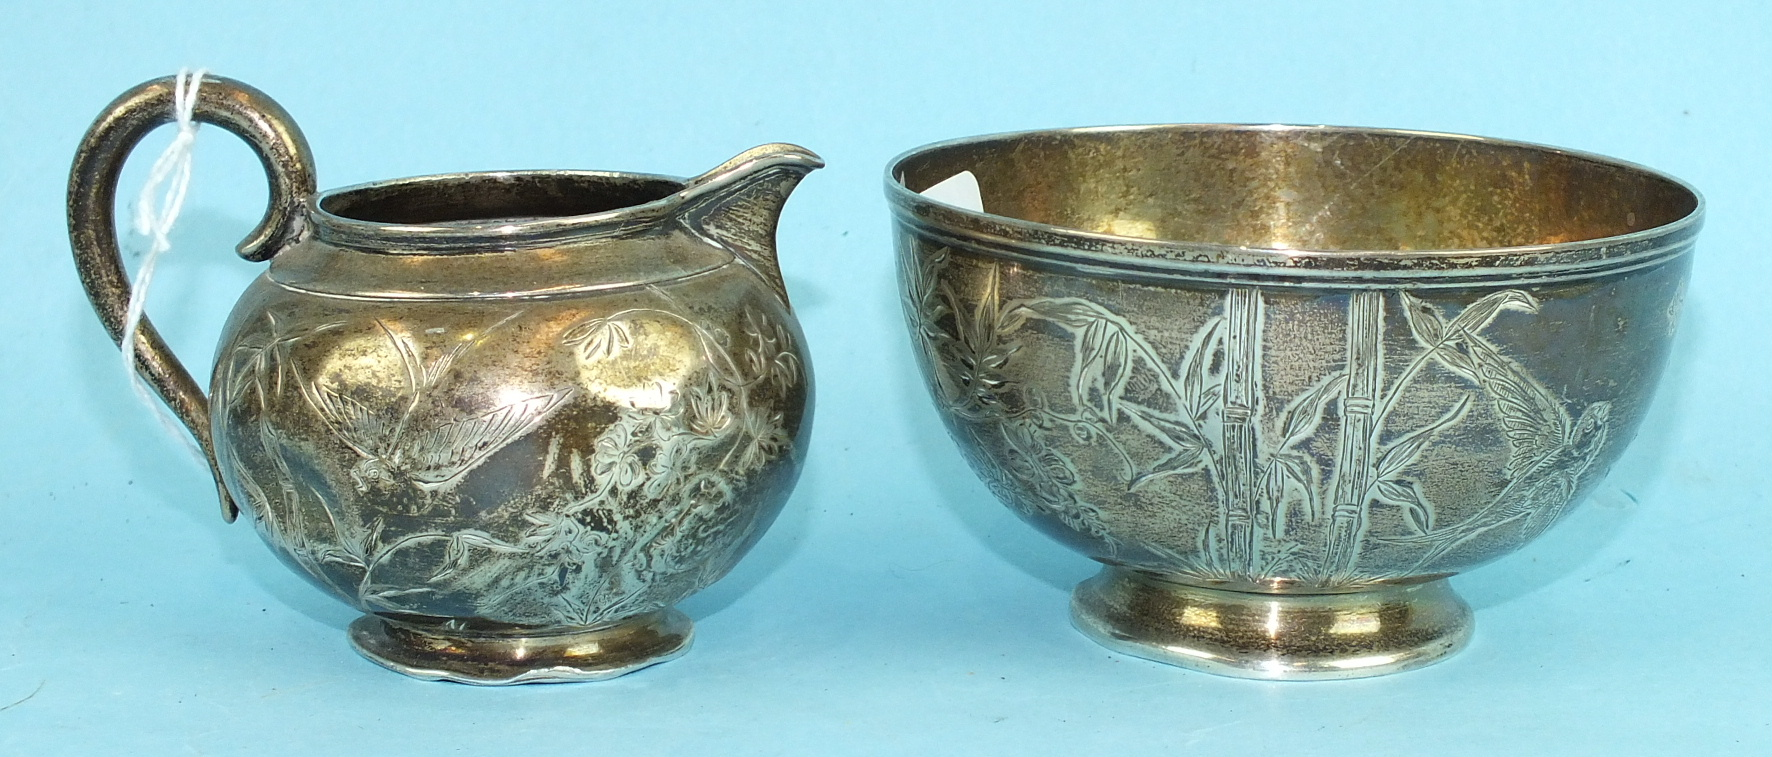 Lot 432 - A silver sugar bowl with etched decoration of birds among bamboo and other foliage, London 1880,